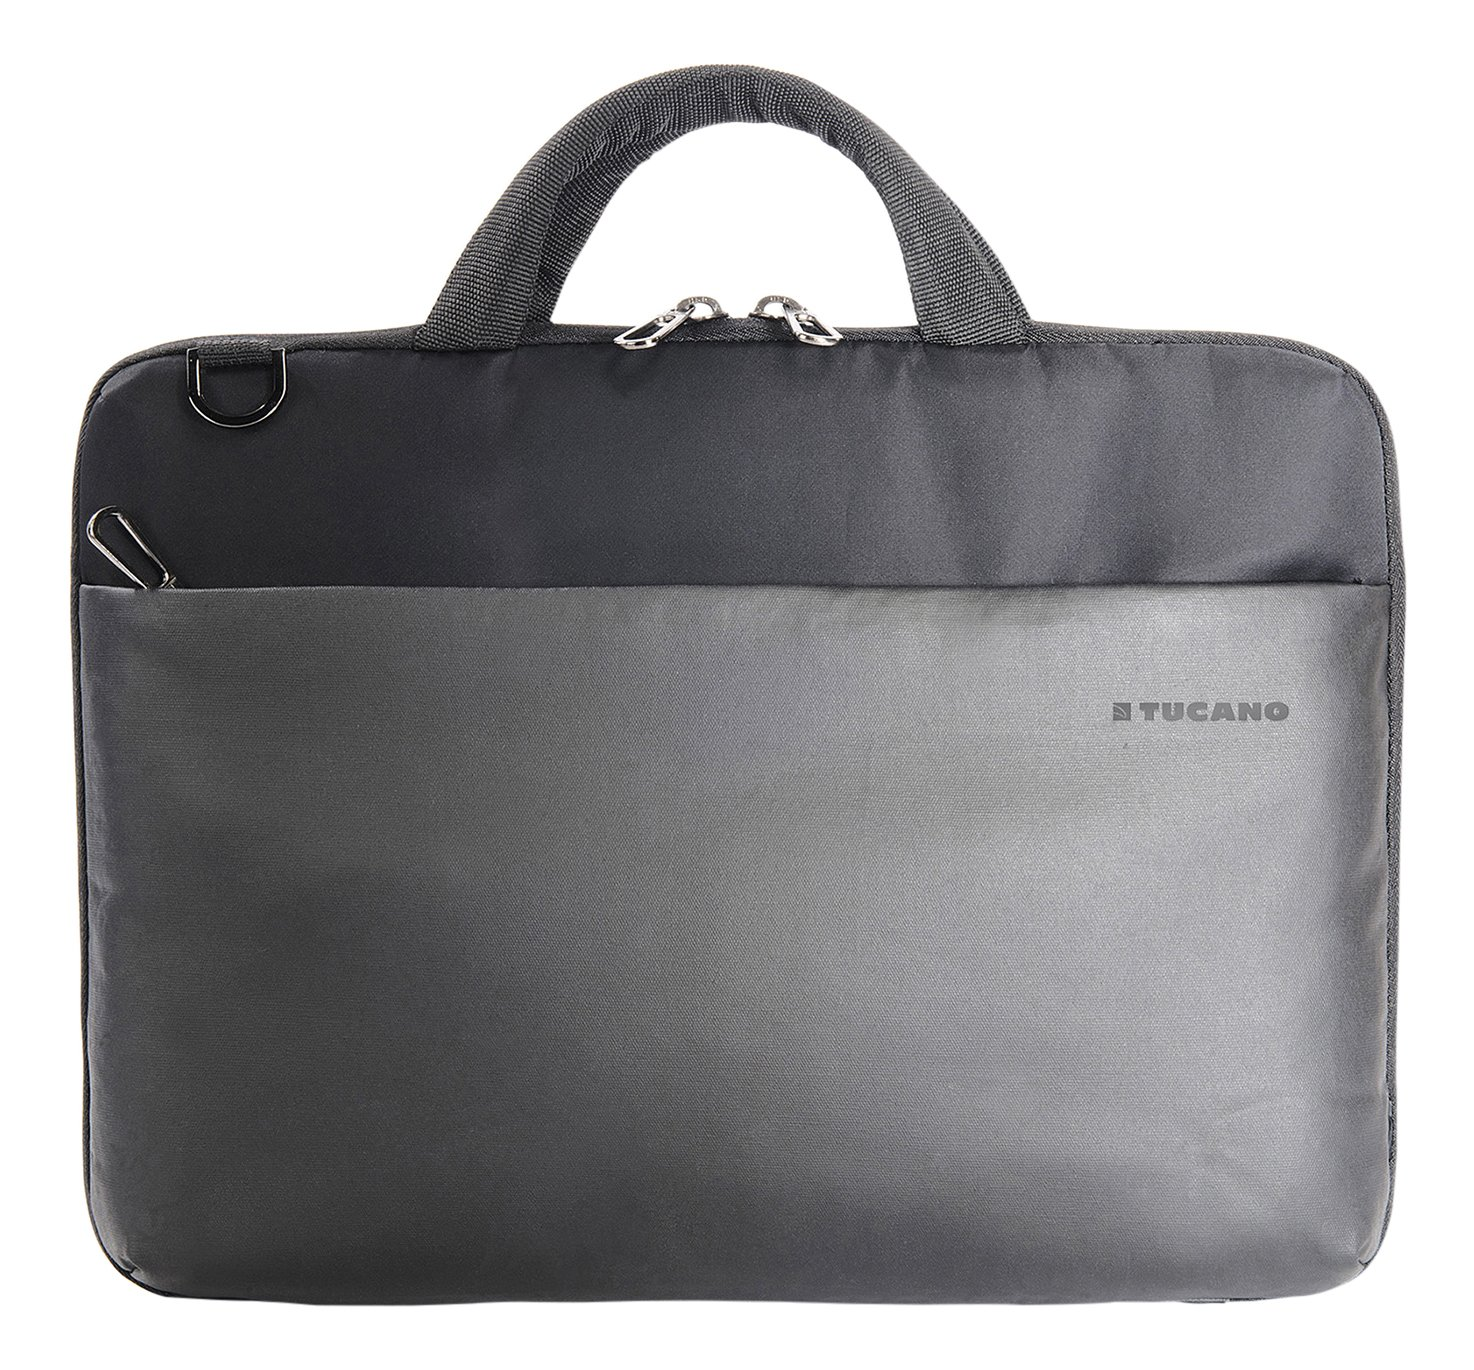 Tucano Dark Work Slim Bag 13'' Laptop Case (Black) by Tucano